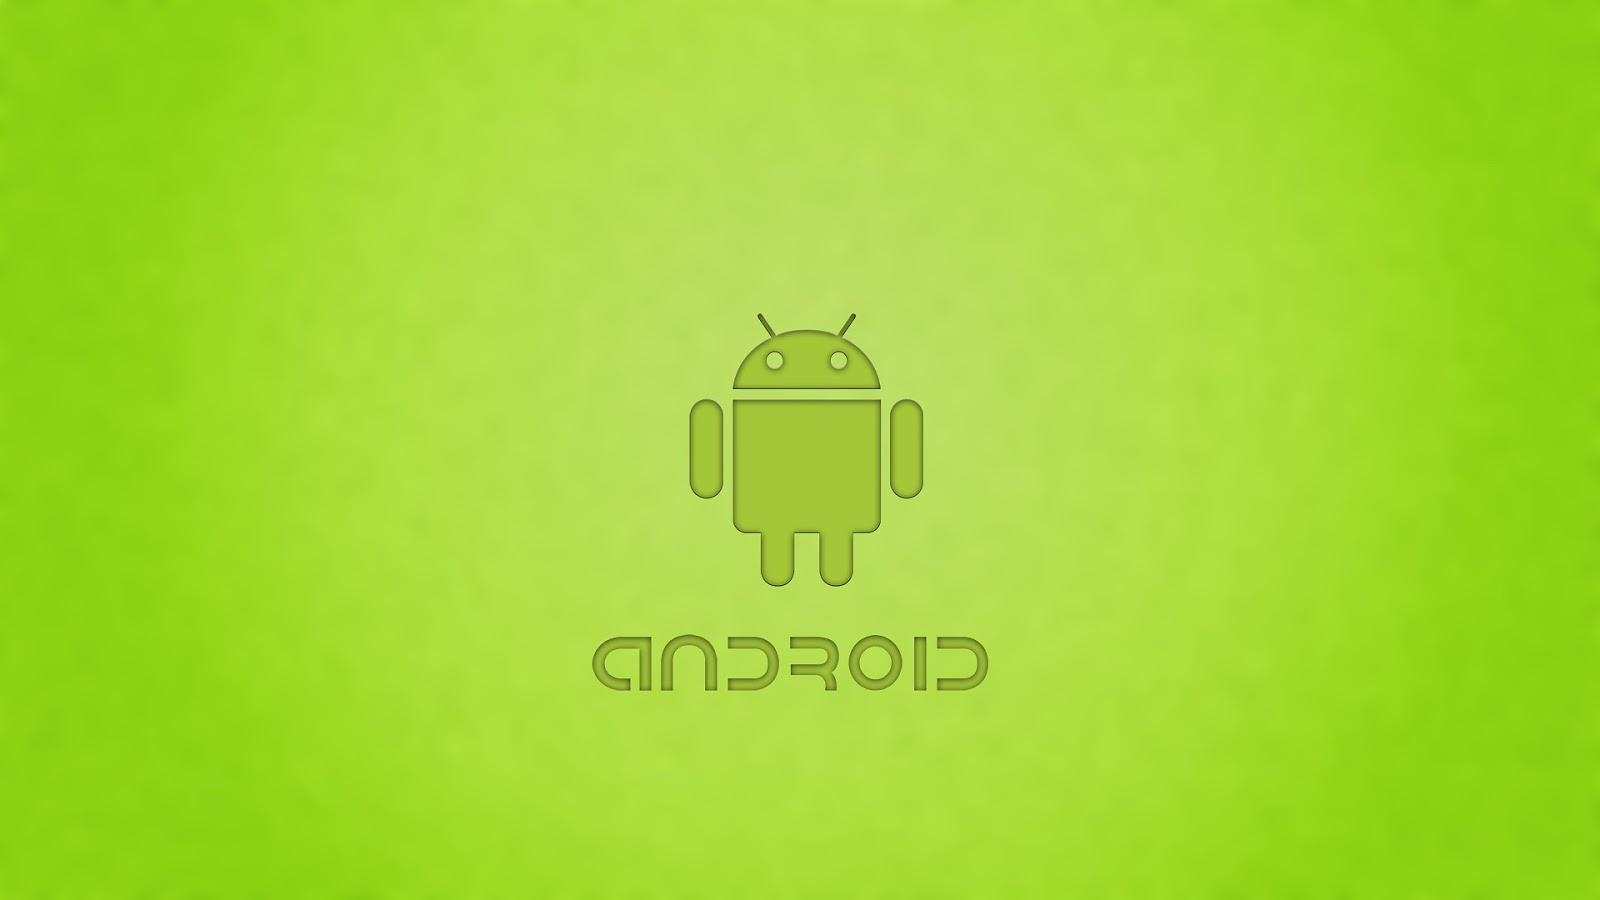 Android achtergrond met groene Android logo HD Android wallpaper 1600x900